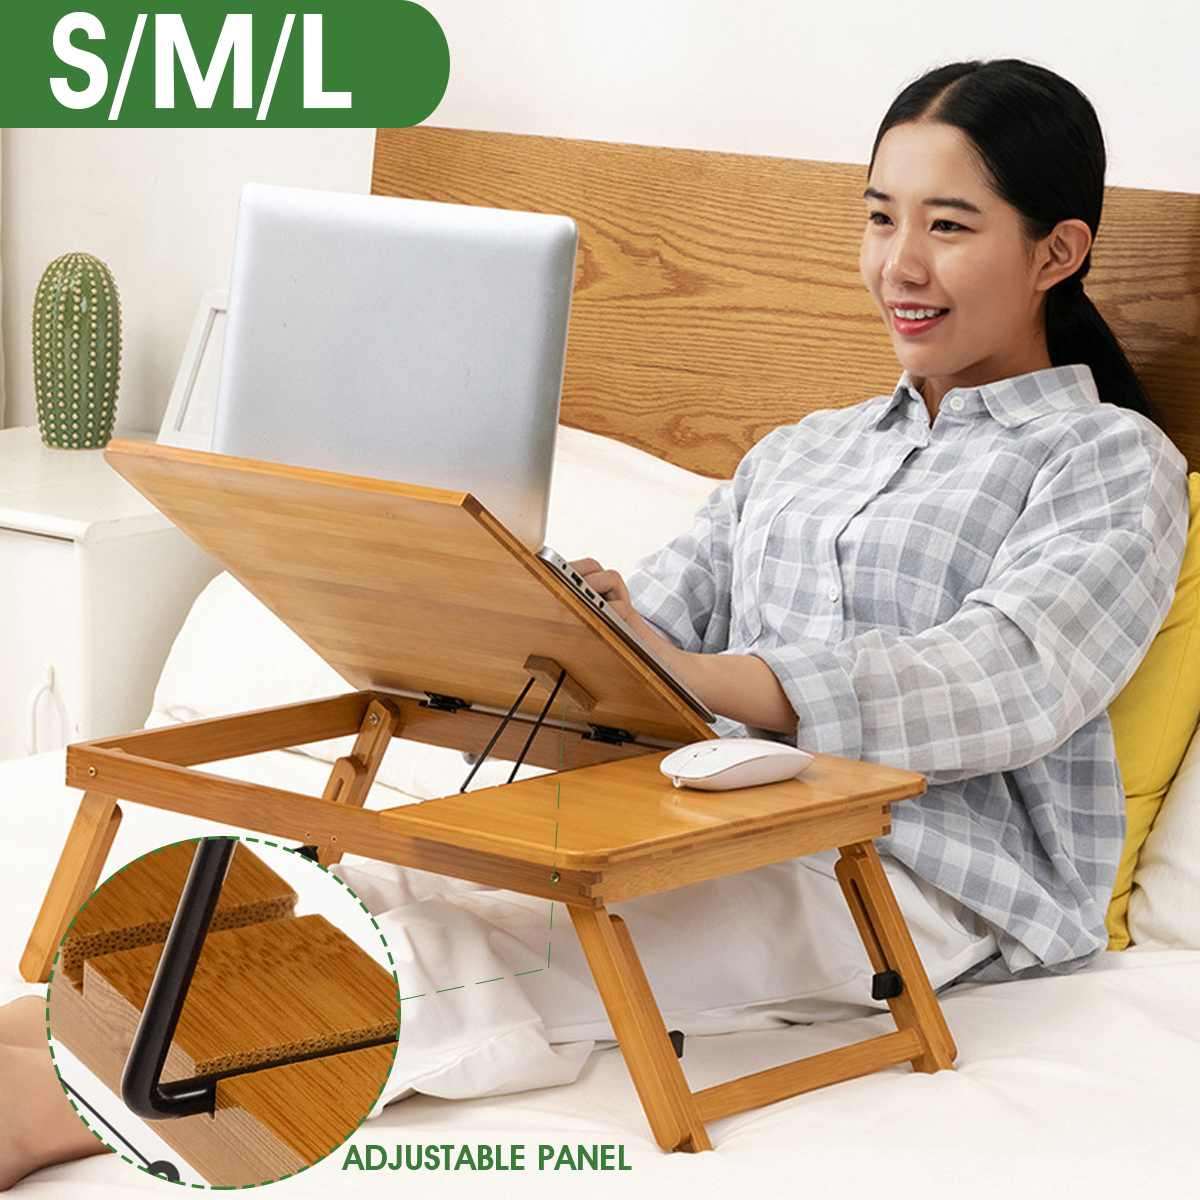 S/M/L Folding Height Adjustable Small Table For Computer Notebook Desk Bed Table Portable Bamboo Laptop Stand Desk